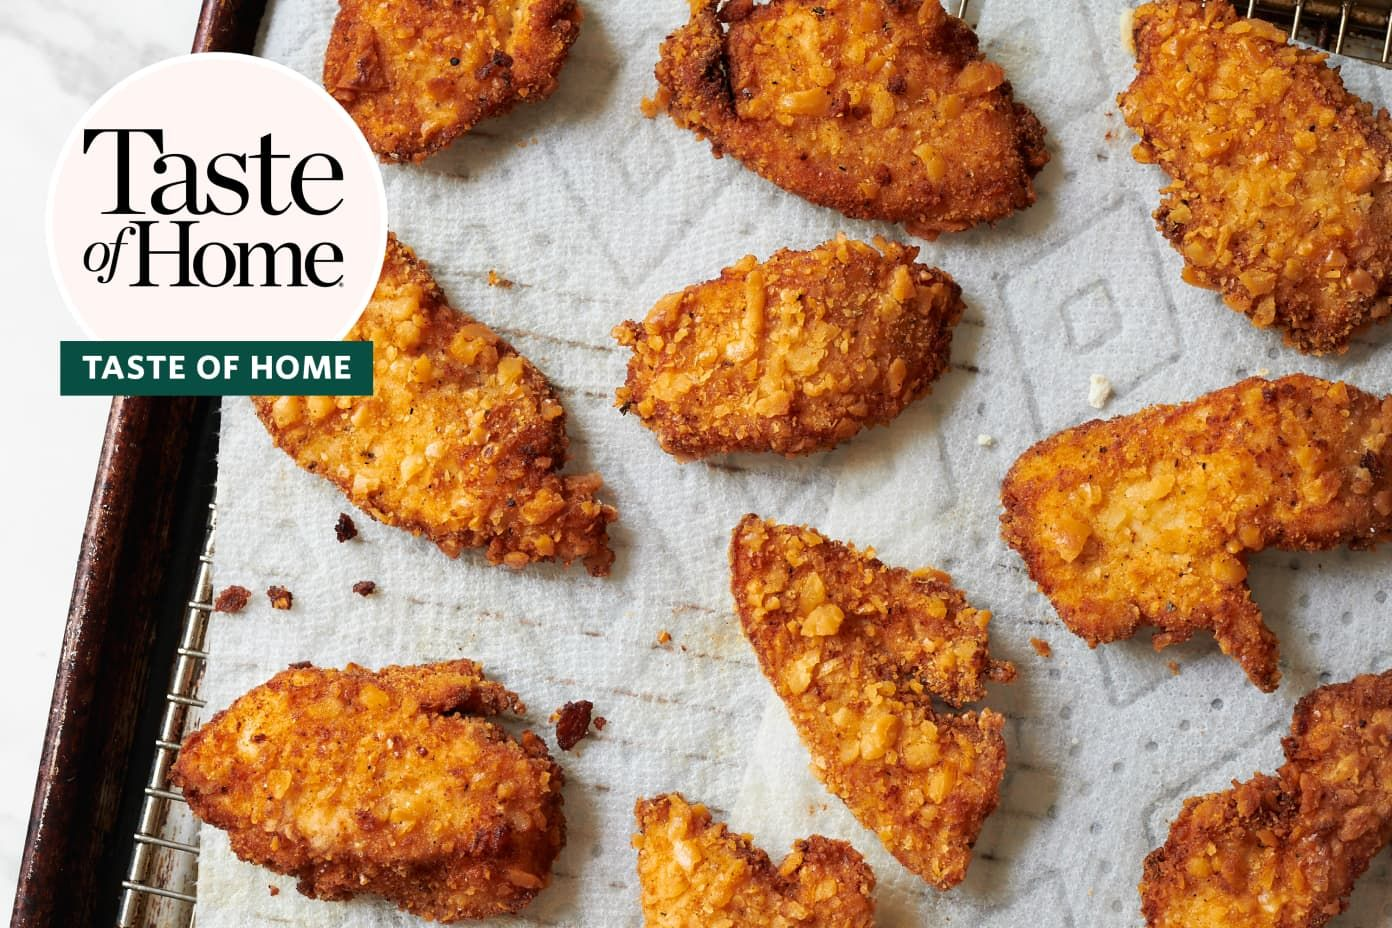 Are Crushed Saltines The Secret To Better Crispier Chicken Tenders I Tried It To Find Out In 2020 Crispy Chicken Tenders Fried Chicken Strips Cooking For Beginners